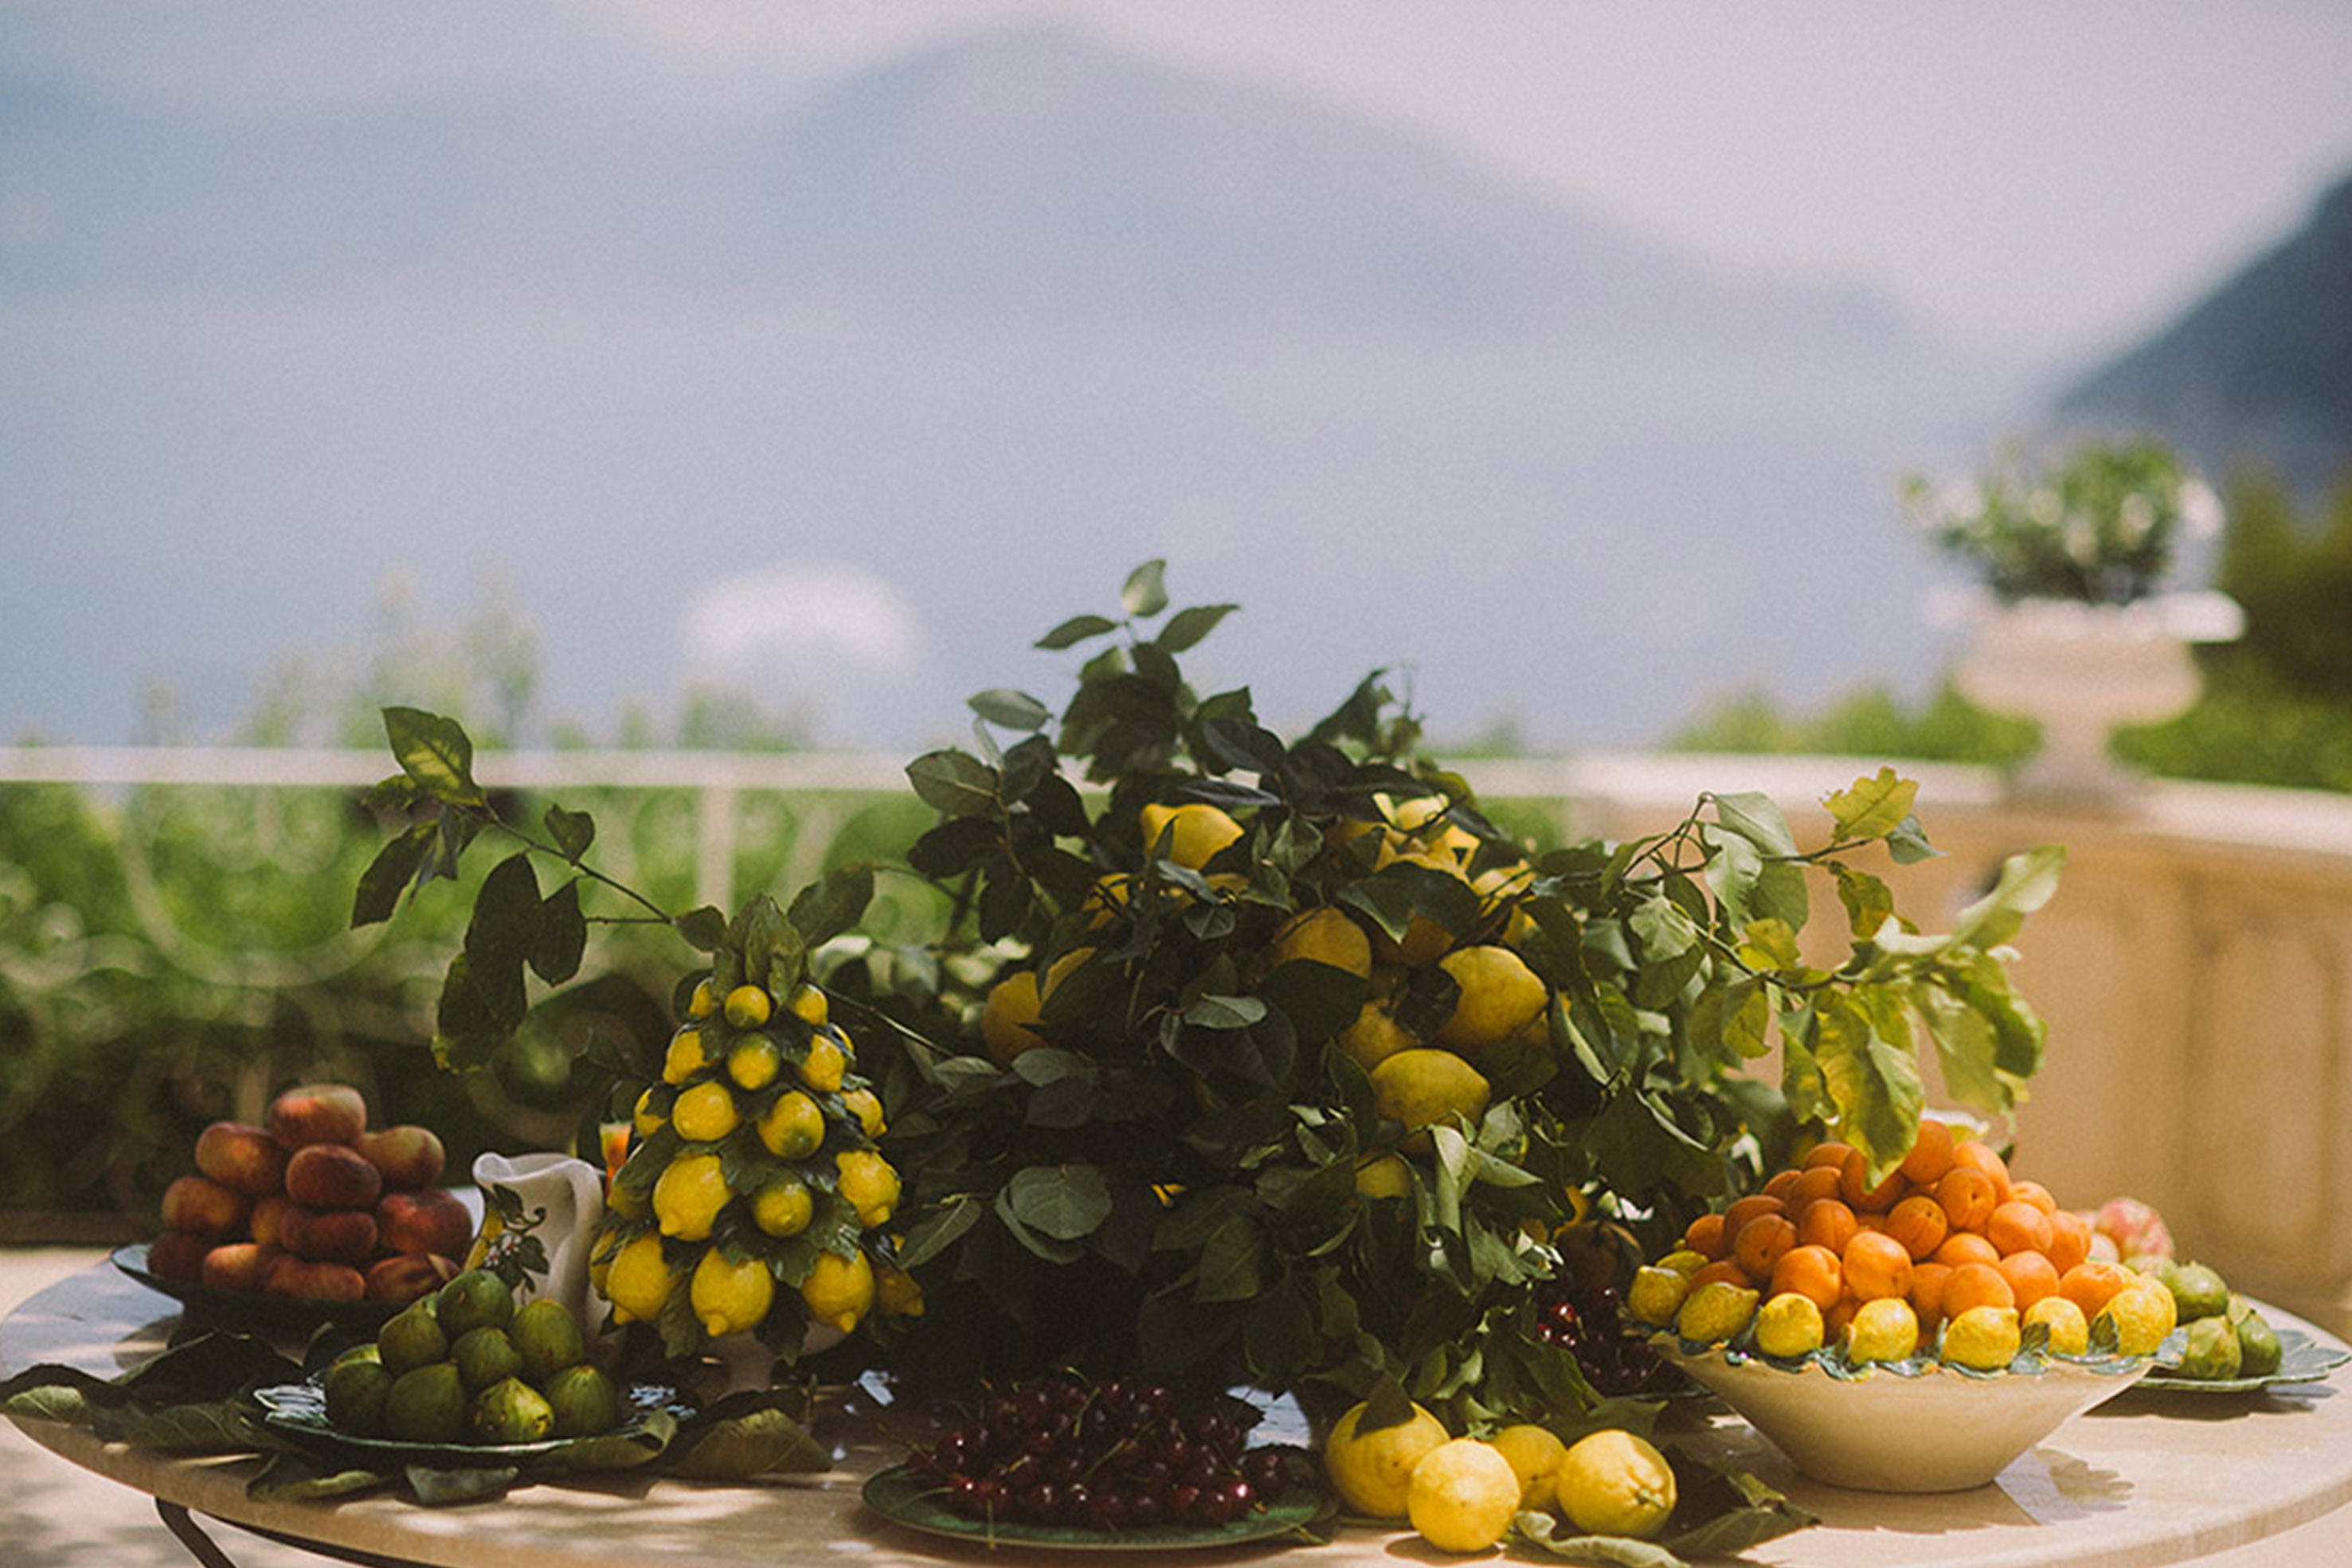 A table filled with citrus fruits, including lemons, oranges and limes, sits on the terrace of a villa surrounded by green foliage.